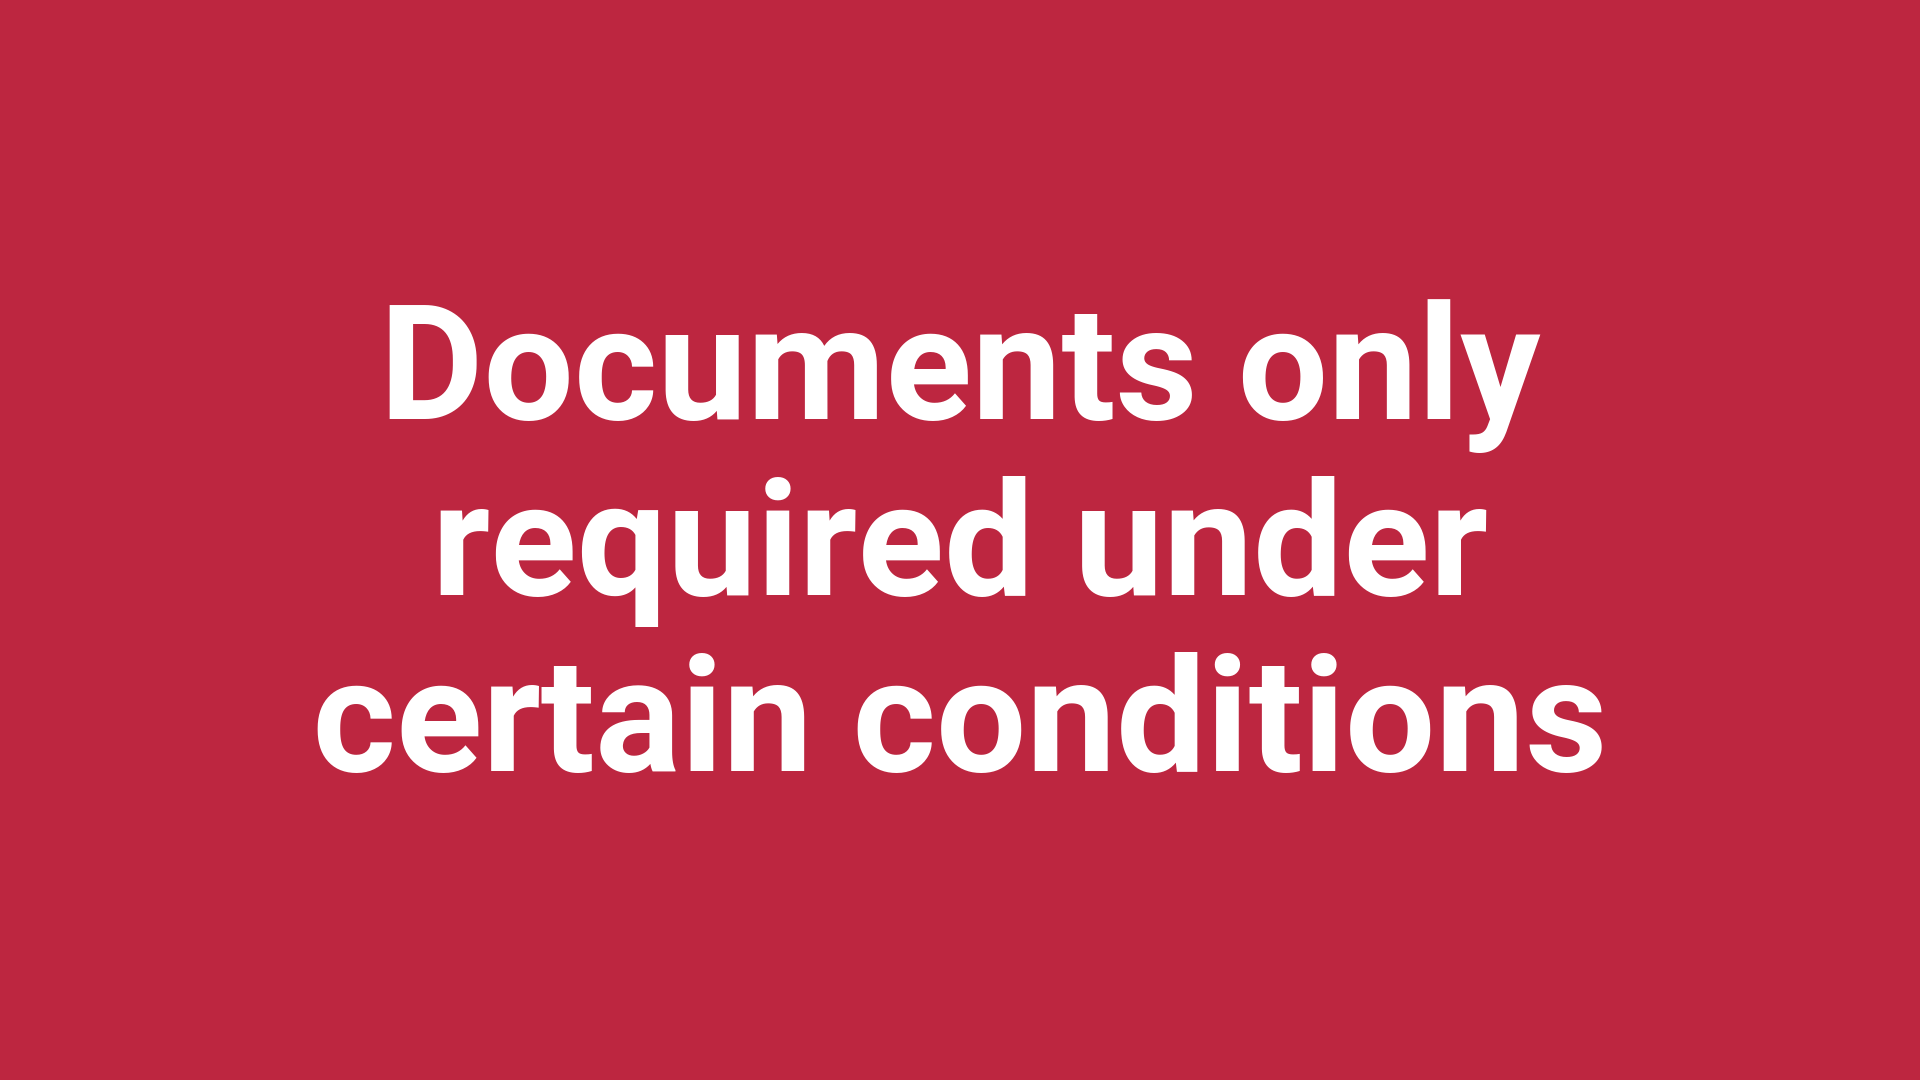 GDPR documentation only required under certain conditions